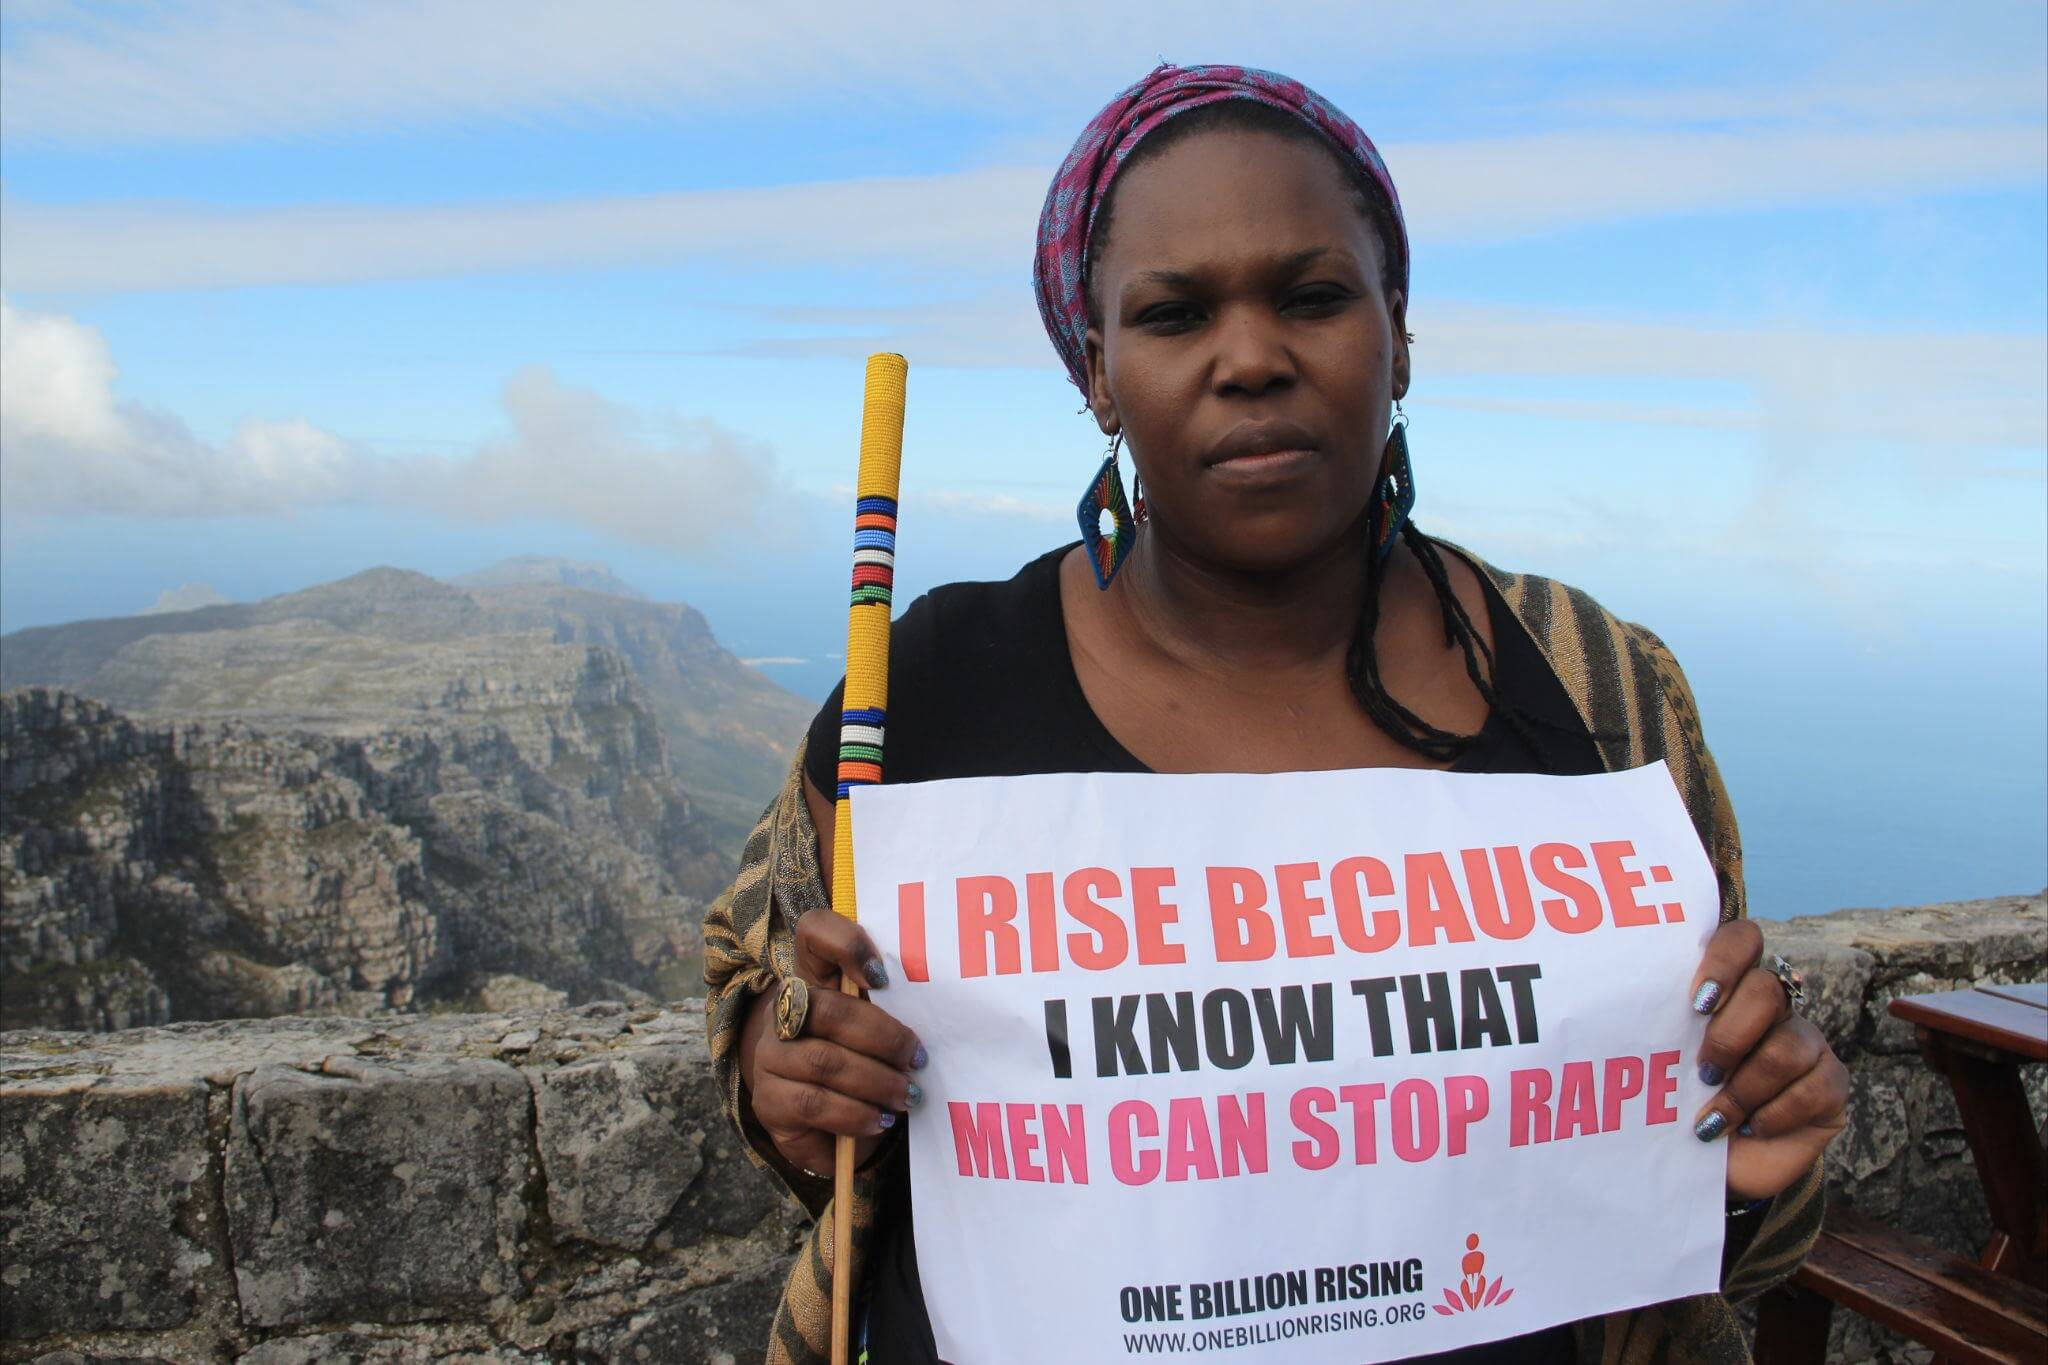 Violence Against Women in South Africa: President Zuma and the ANC Still Have Not Got the Message